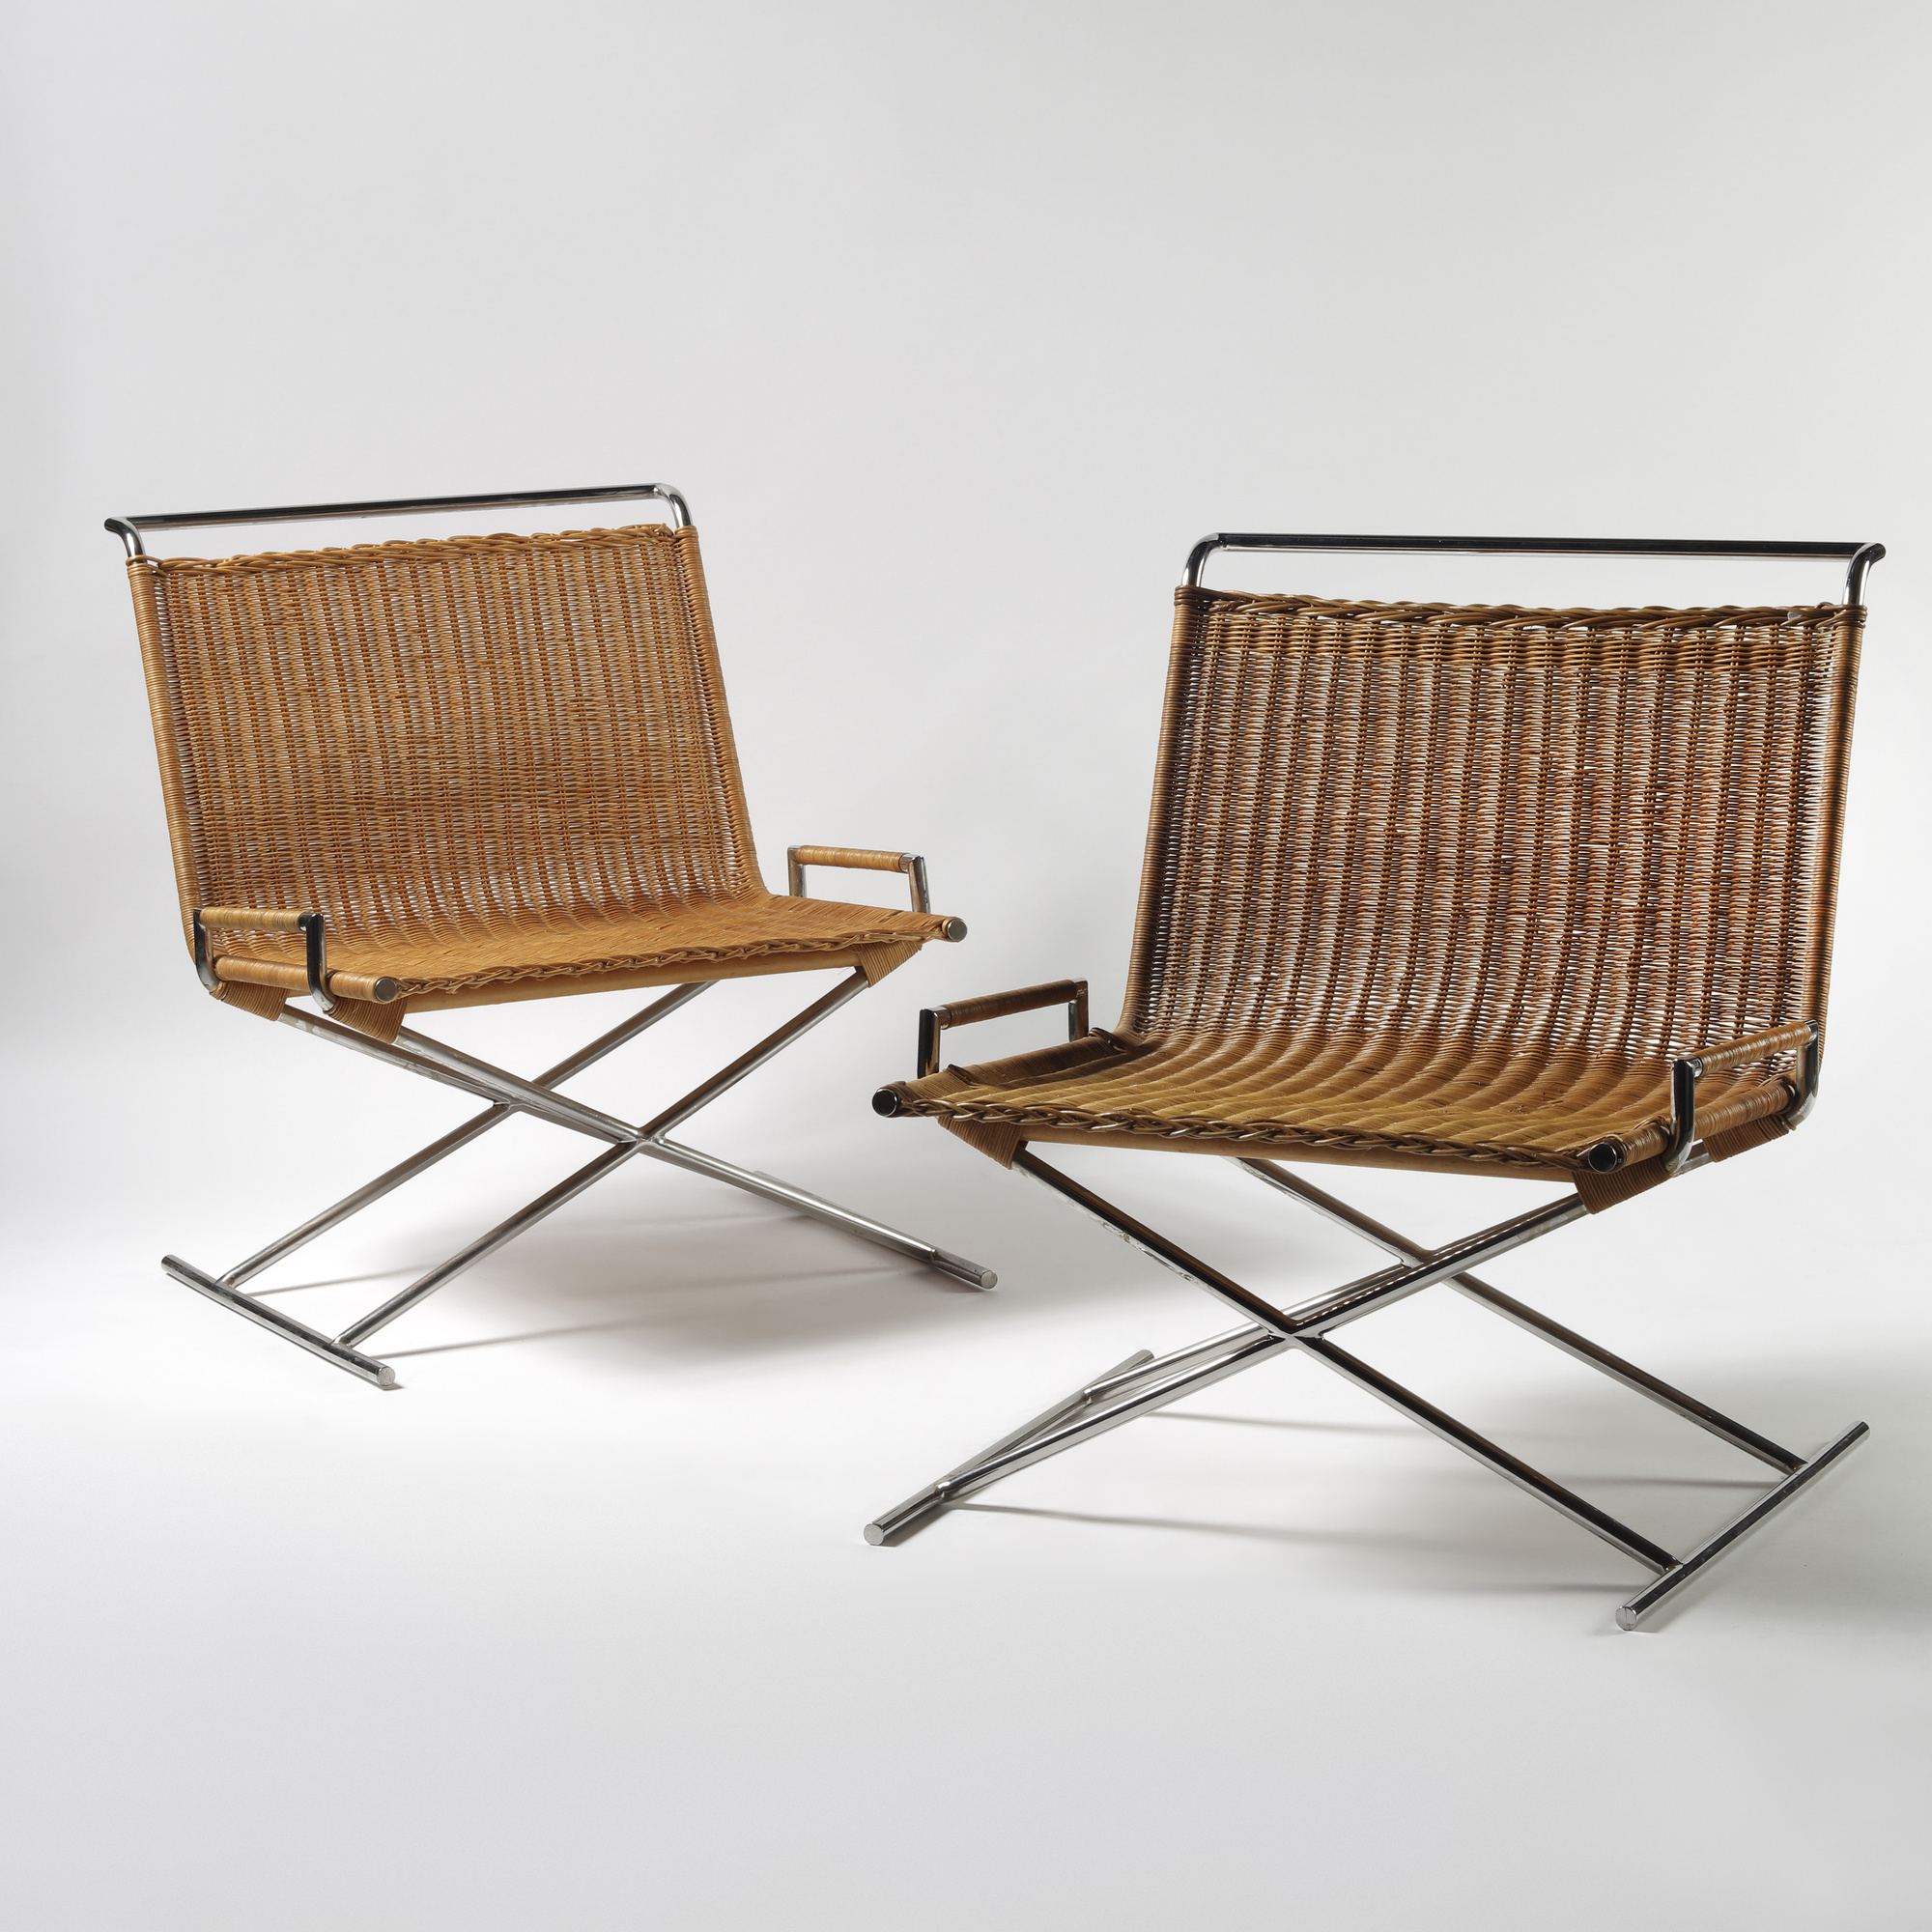 311: Ward Bennett / Sled chairs, pair (2 of 2)